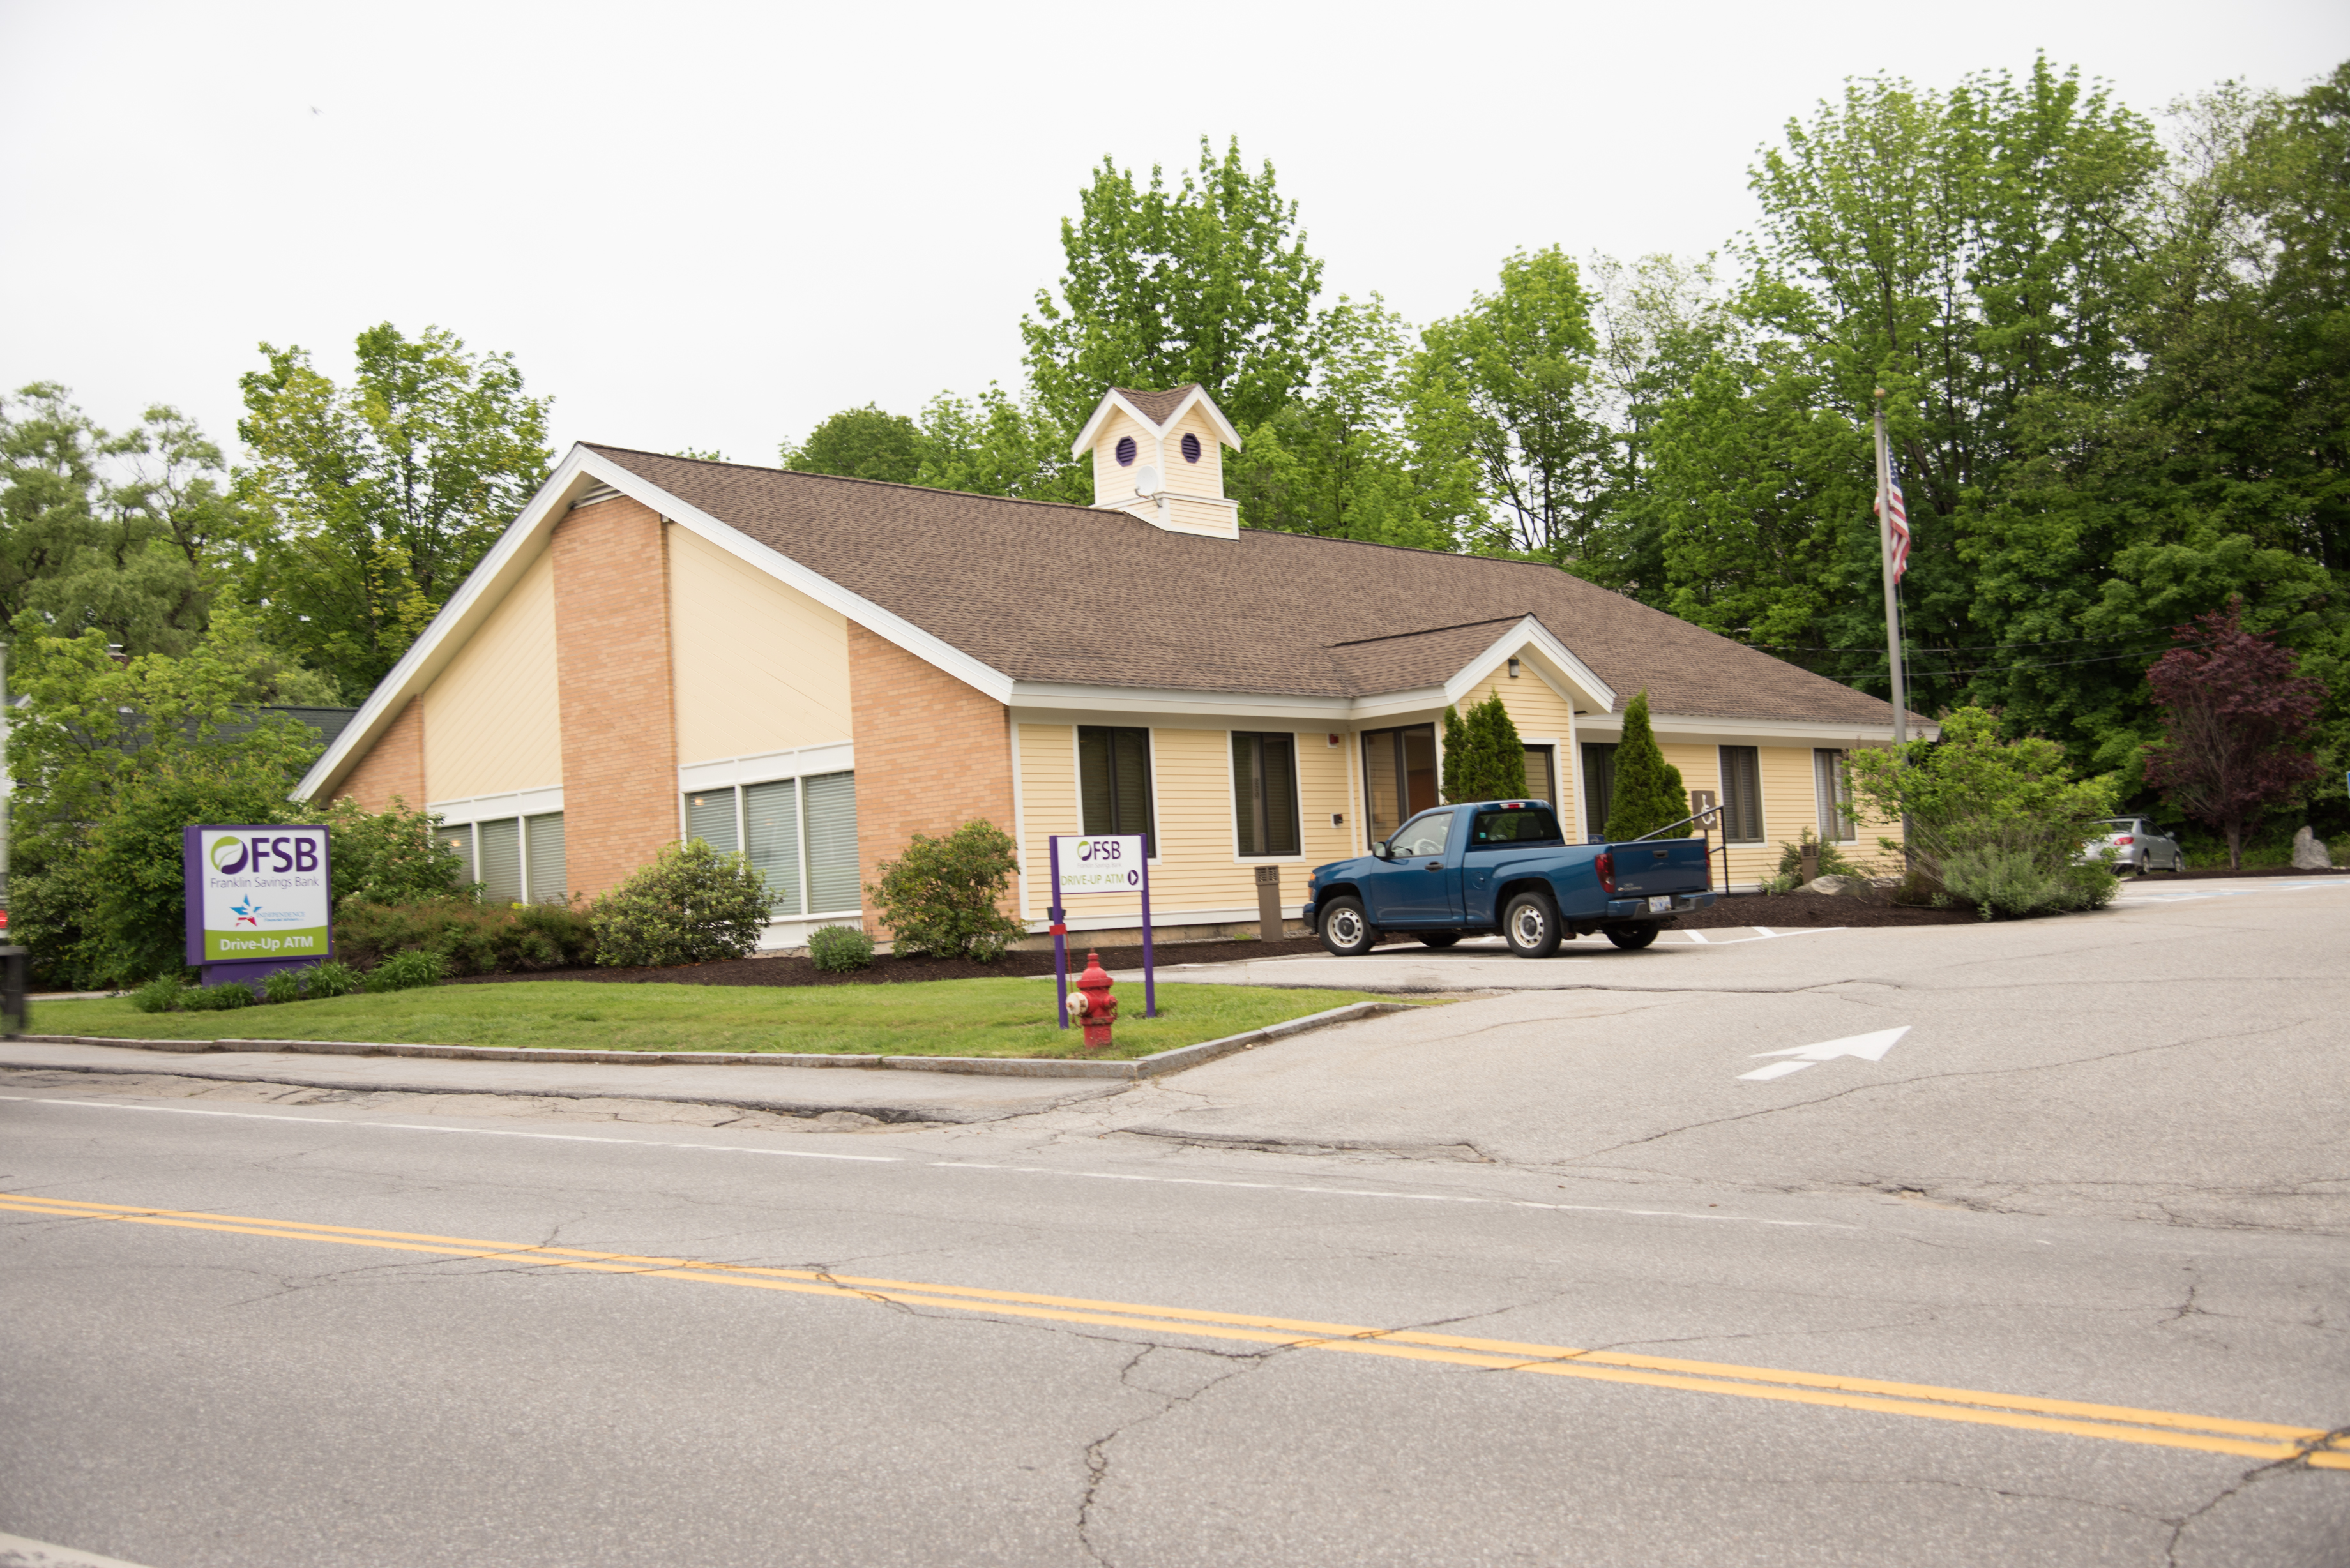 bristol office | lobby & drive-up atm location | franklin savings bank